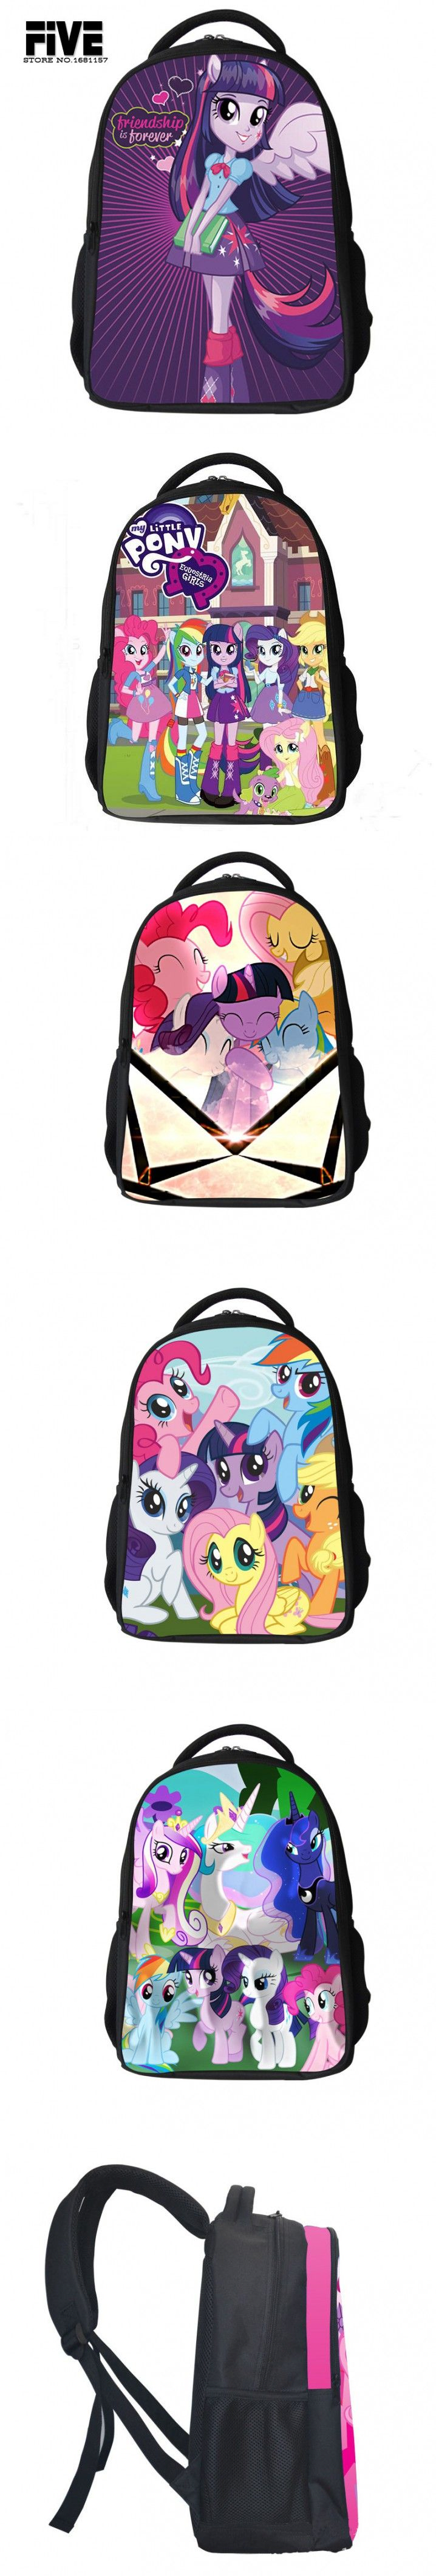 2015 new school bags for Teenagers Girls My Little Pony Backpack Kids School Bags Cute Boy Pony Horse Bag Child Mochila $19.9